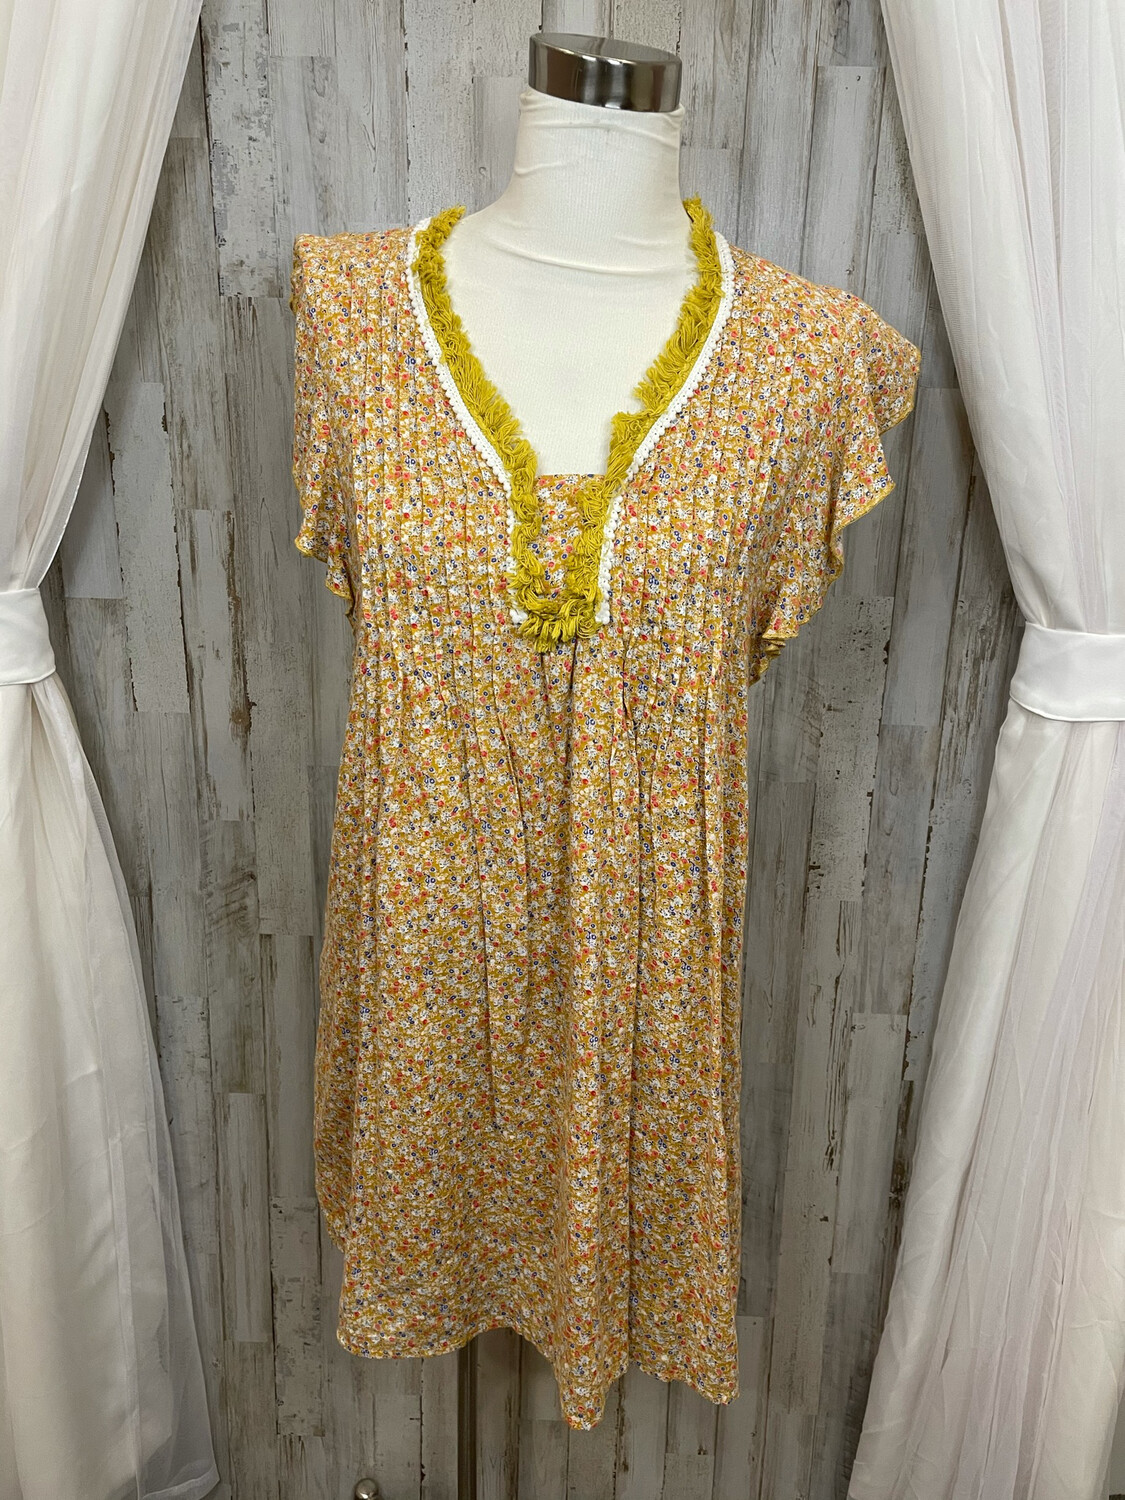 Hayden Yellow Floral Dress with Fringe Accent - S